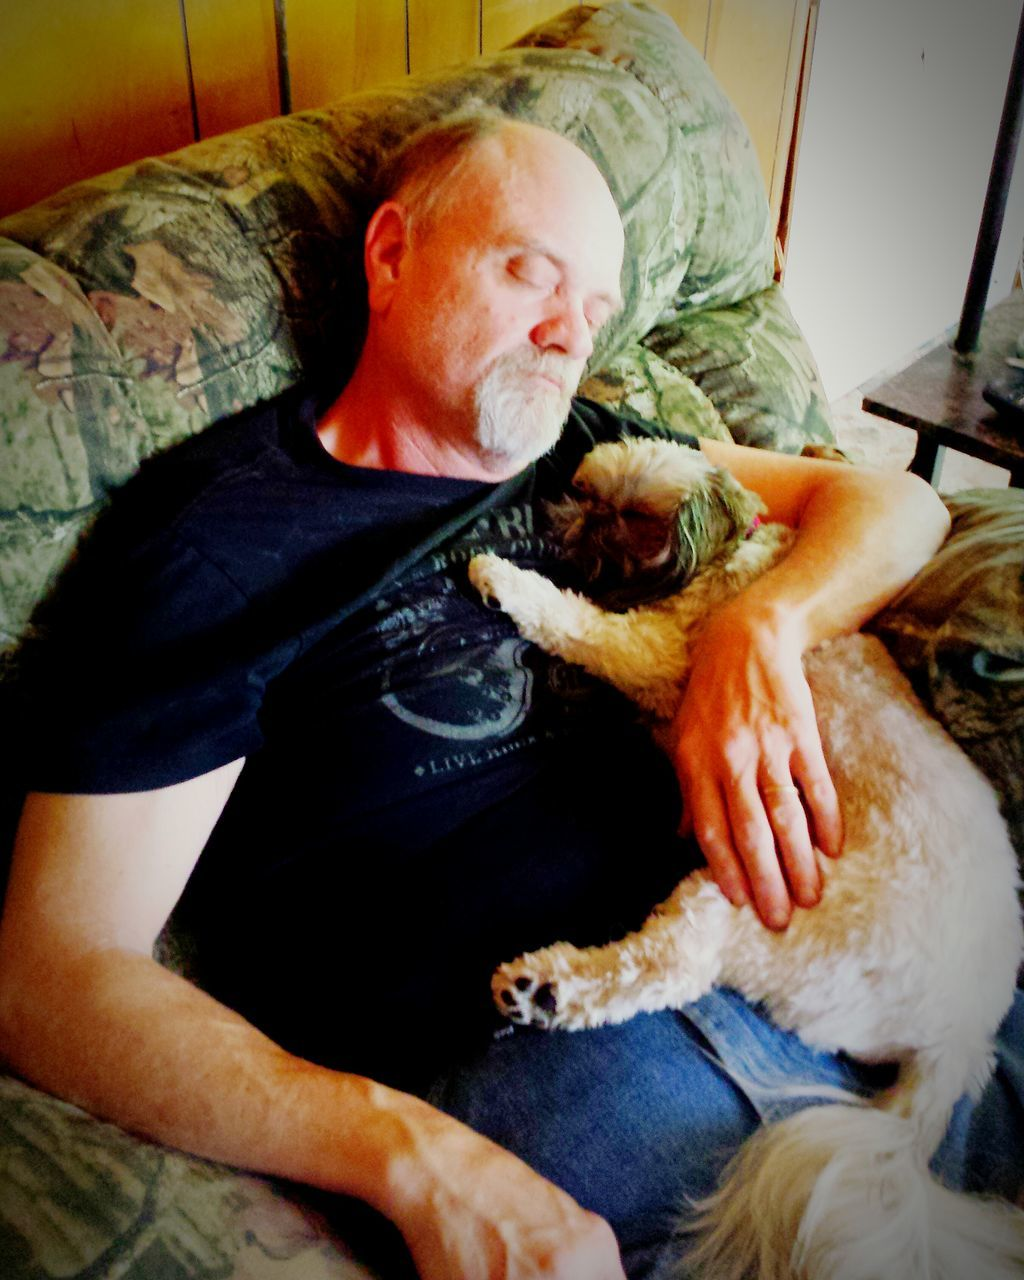 pets, indoors, domestic animals, one animal, real people, mammal, love, home interior, baby, sleeping, men, bed, dog, sitting, two people, relaxation, bonding, childhood, bedroom, day, people